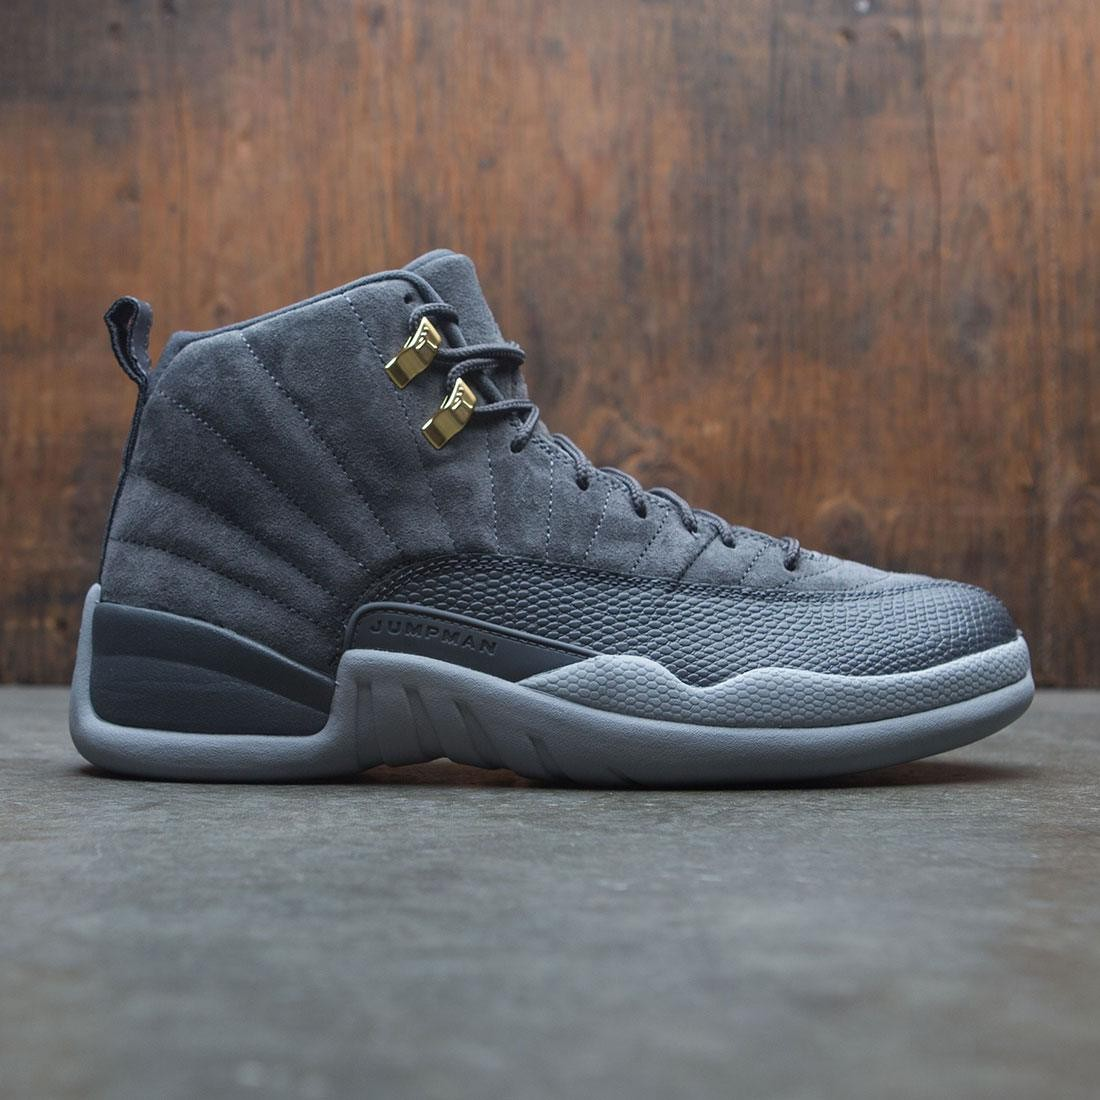 buy online 5bd50 fdc49 jordan men air jordan 12 retro dark grey dark grey wolf grey